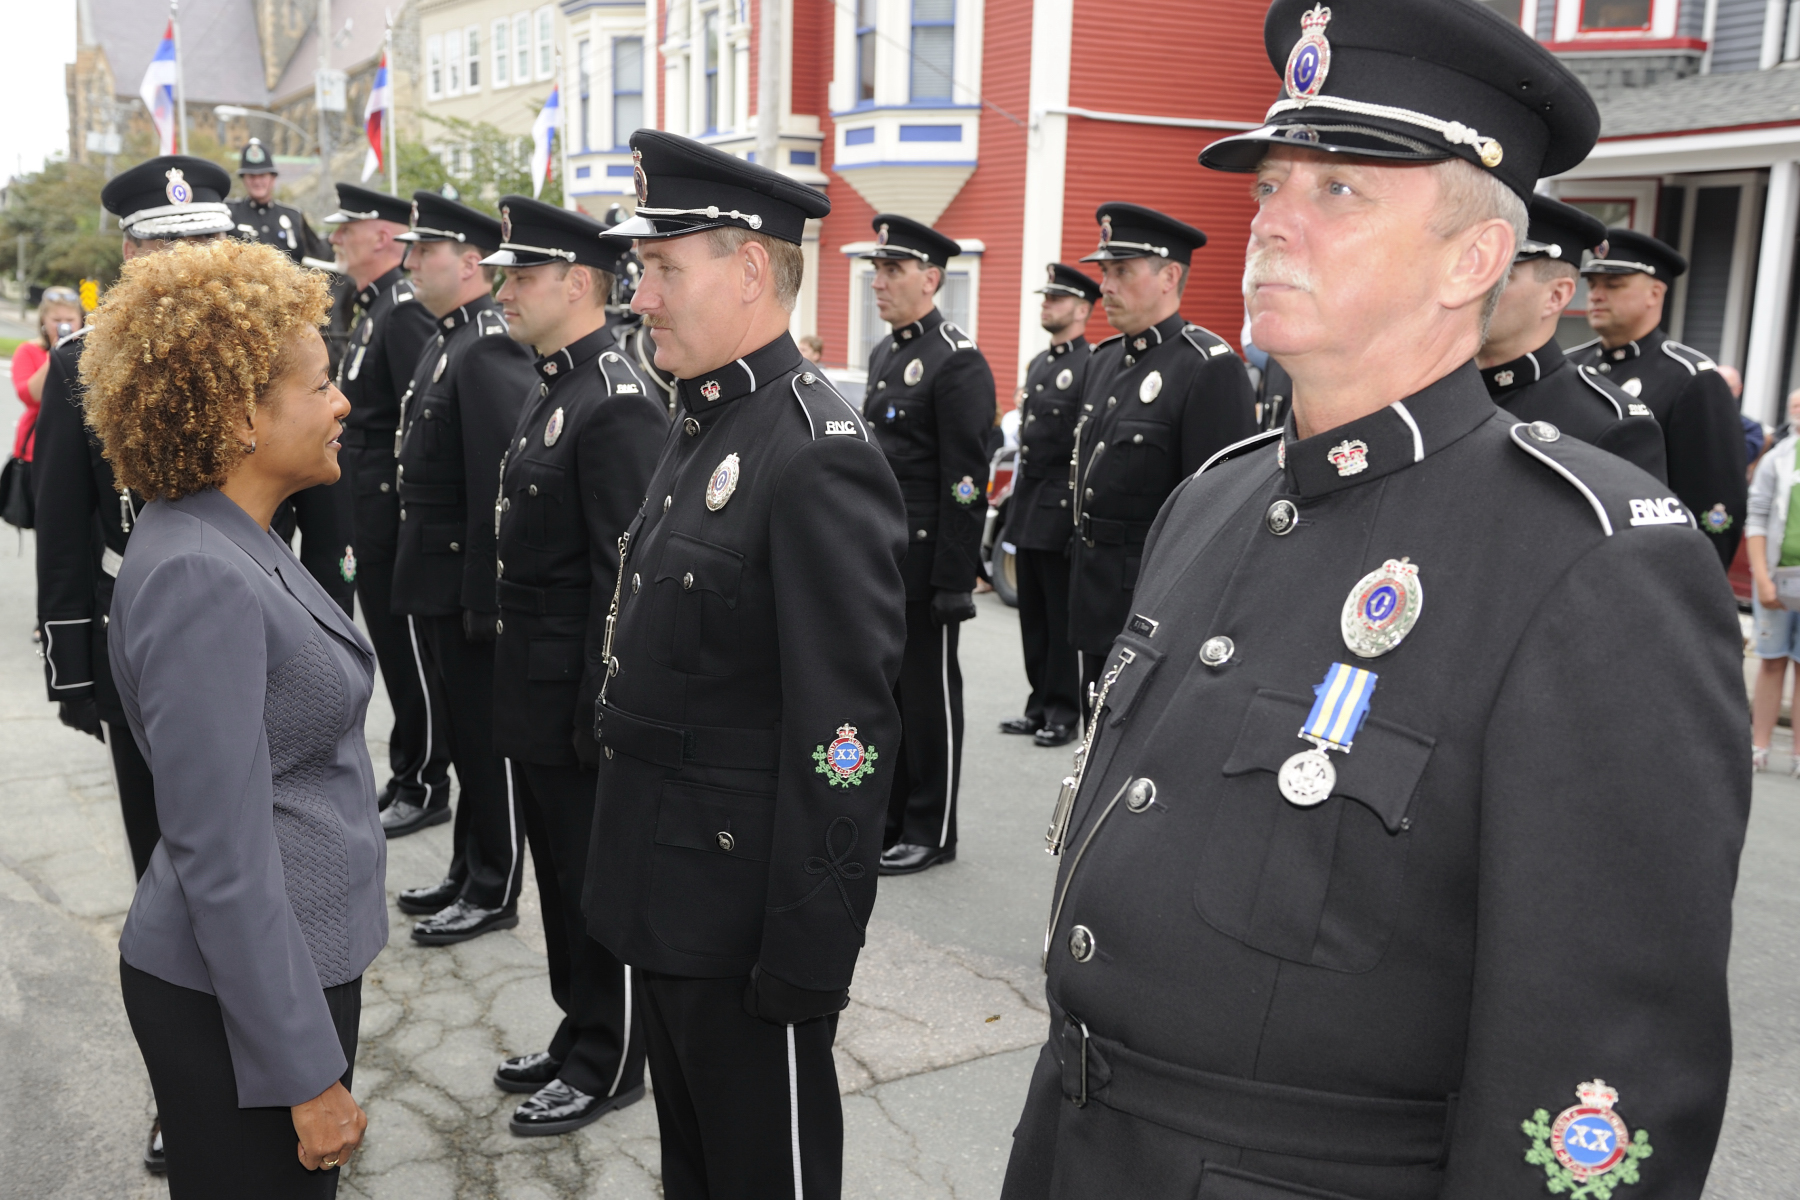 During the inspection, Her Excellency took the time to speak to a few of the officers.